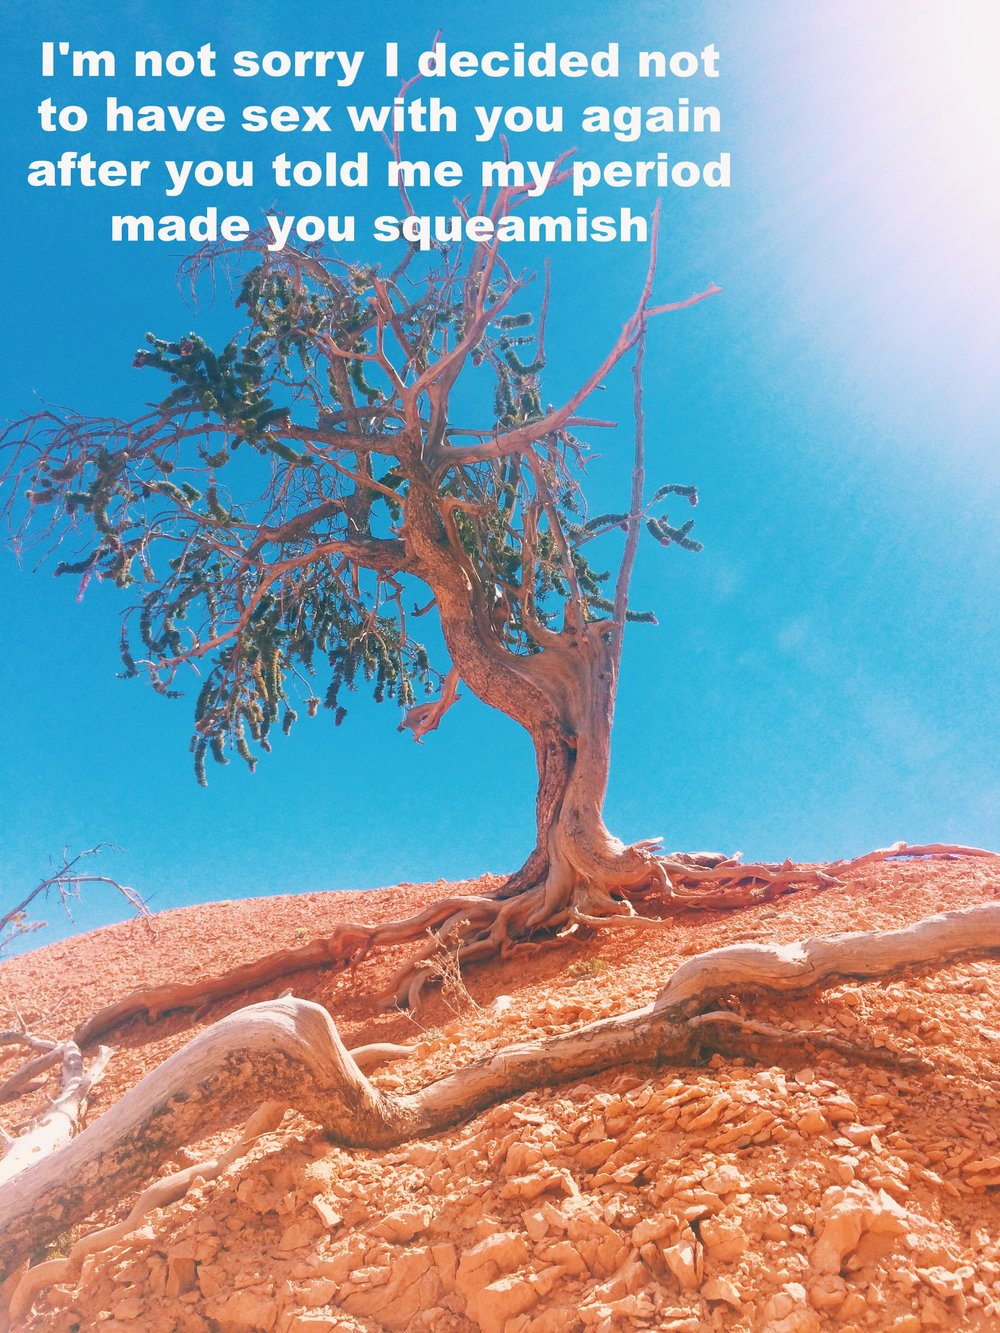 "Liz May 18 2017 A tree with exposed and intricate roots stands tall and alone on red desert rock. The twisted branches lean off to the left and have some bunches of leaves and some bare branches. The sky is a clear blue and the sun is shining. ""I'm not sorry I decided not to have sex with you again after you told me my period made you squeamish"" is overlaid."